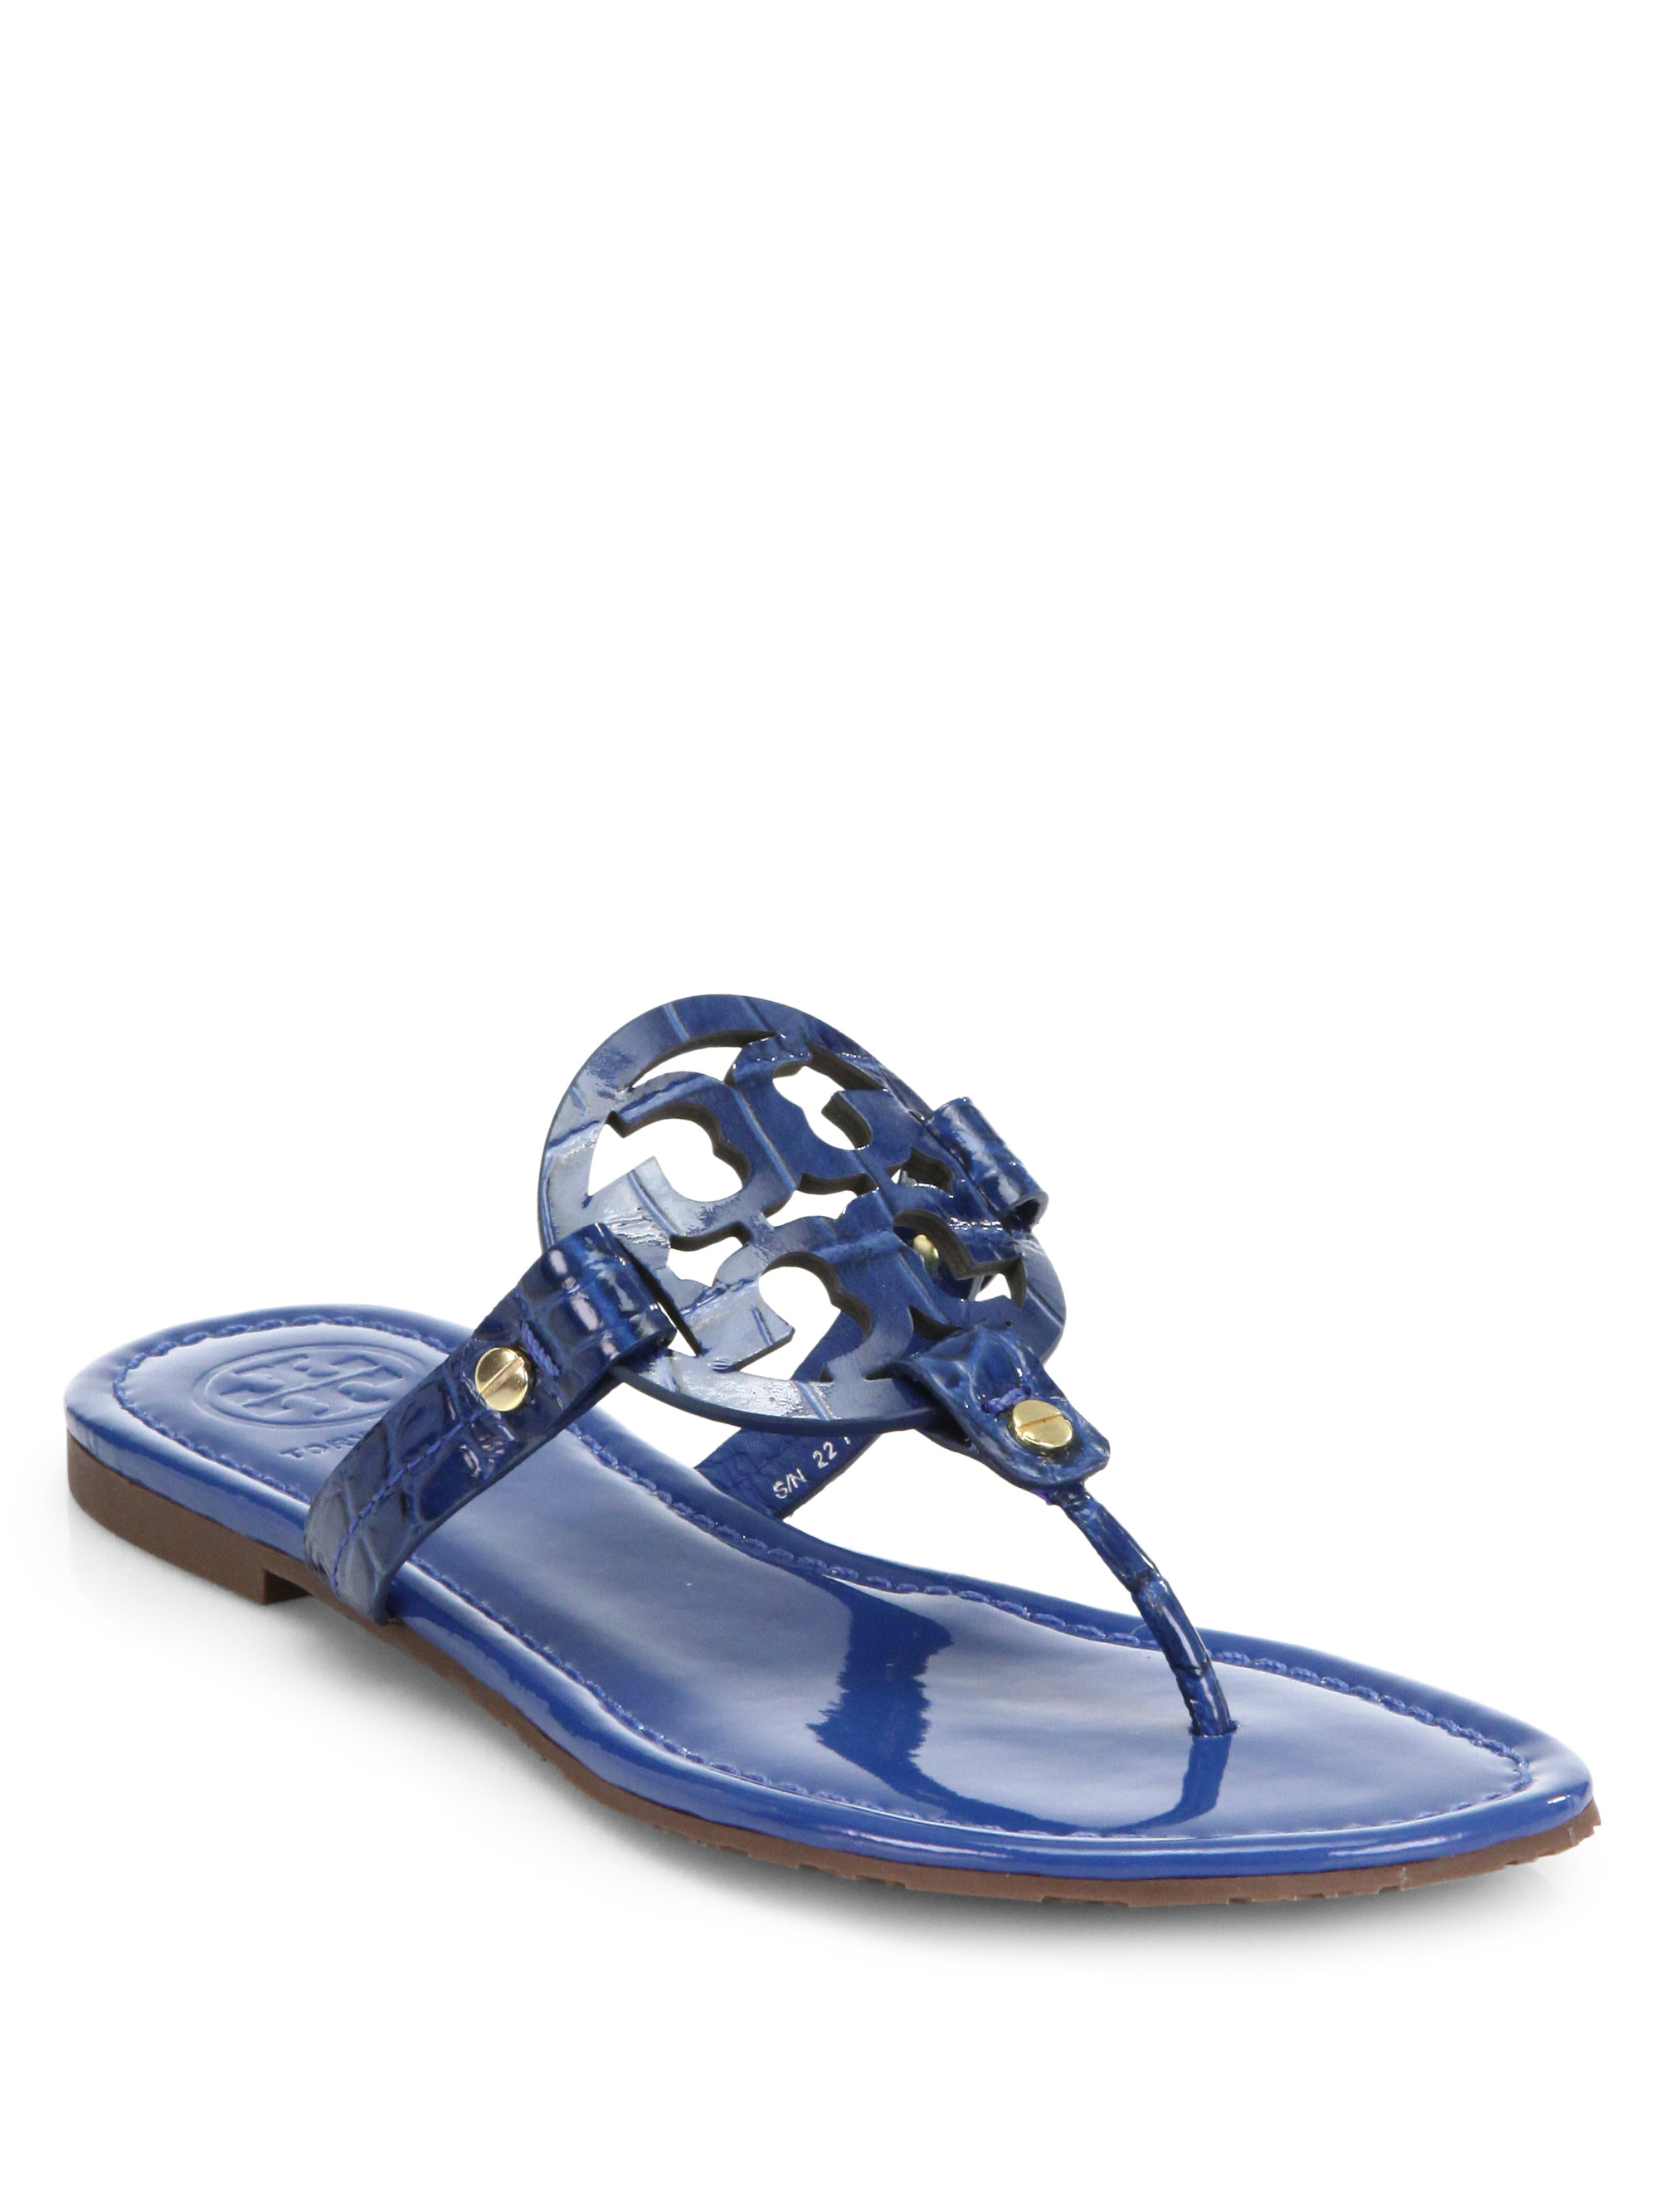 27e01432f740f Lyst - Tory Burch Miller Crocodileembossed Patent Leather Sandals in ...